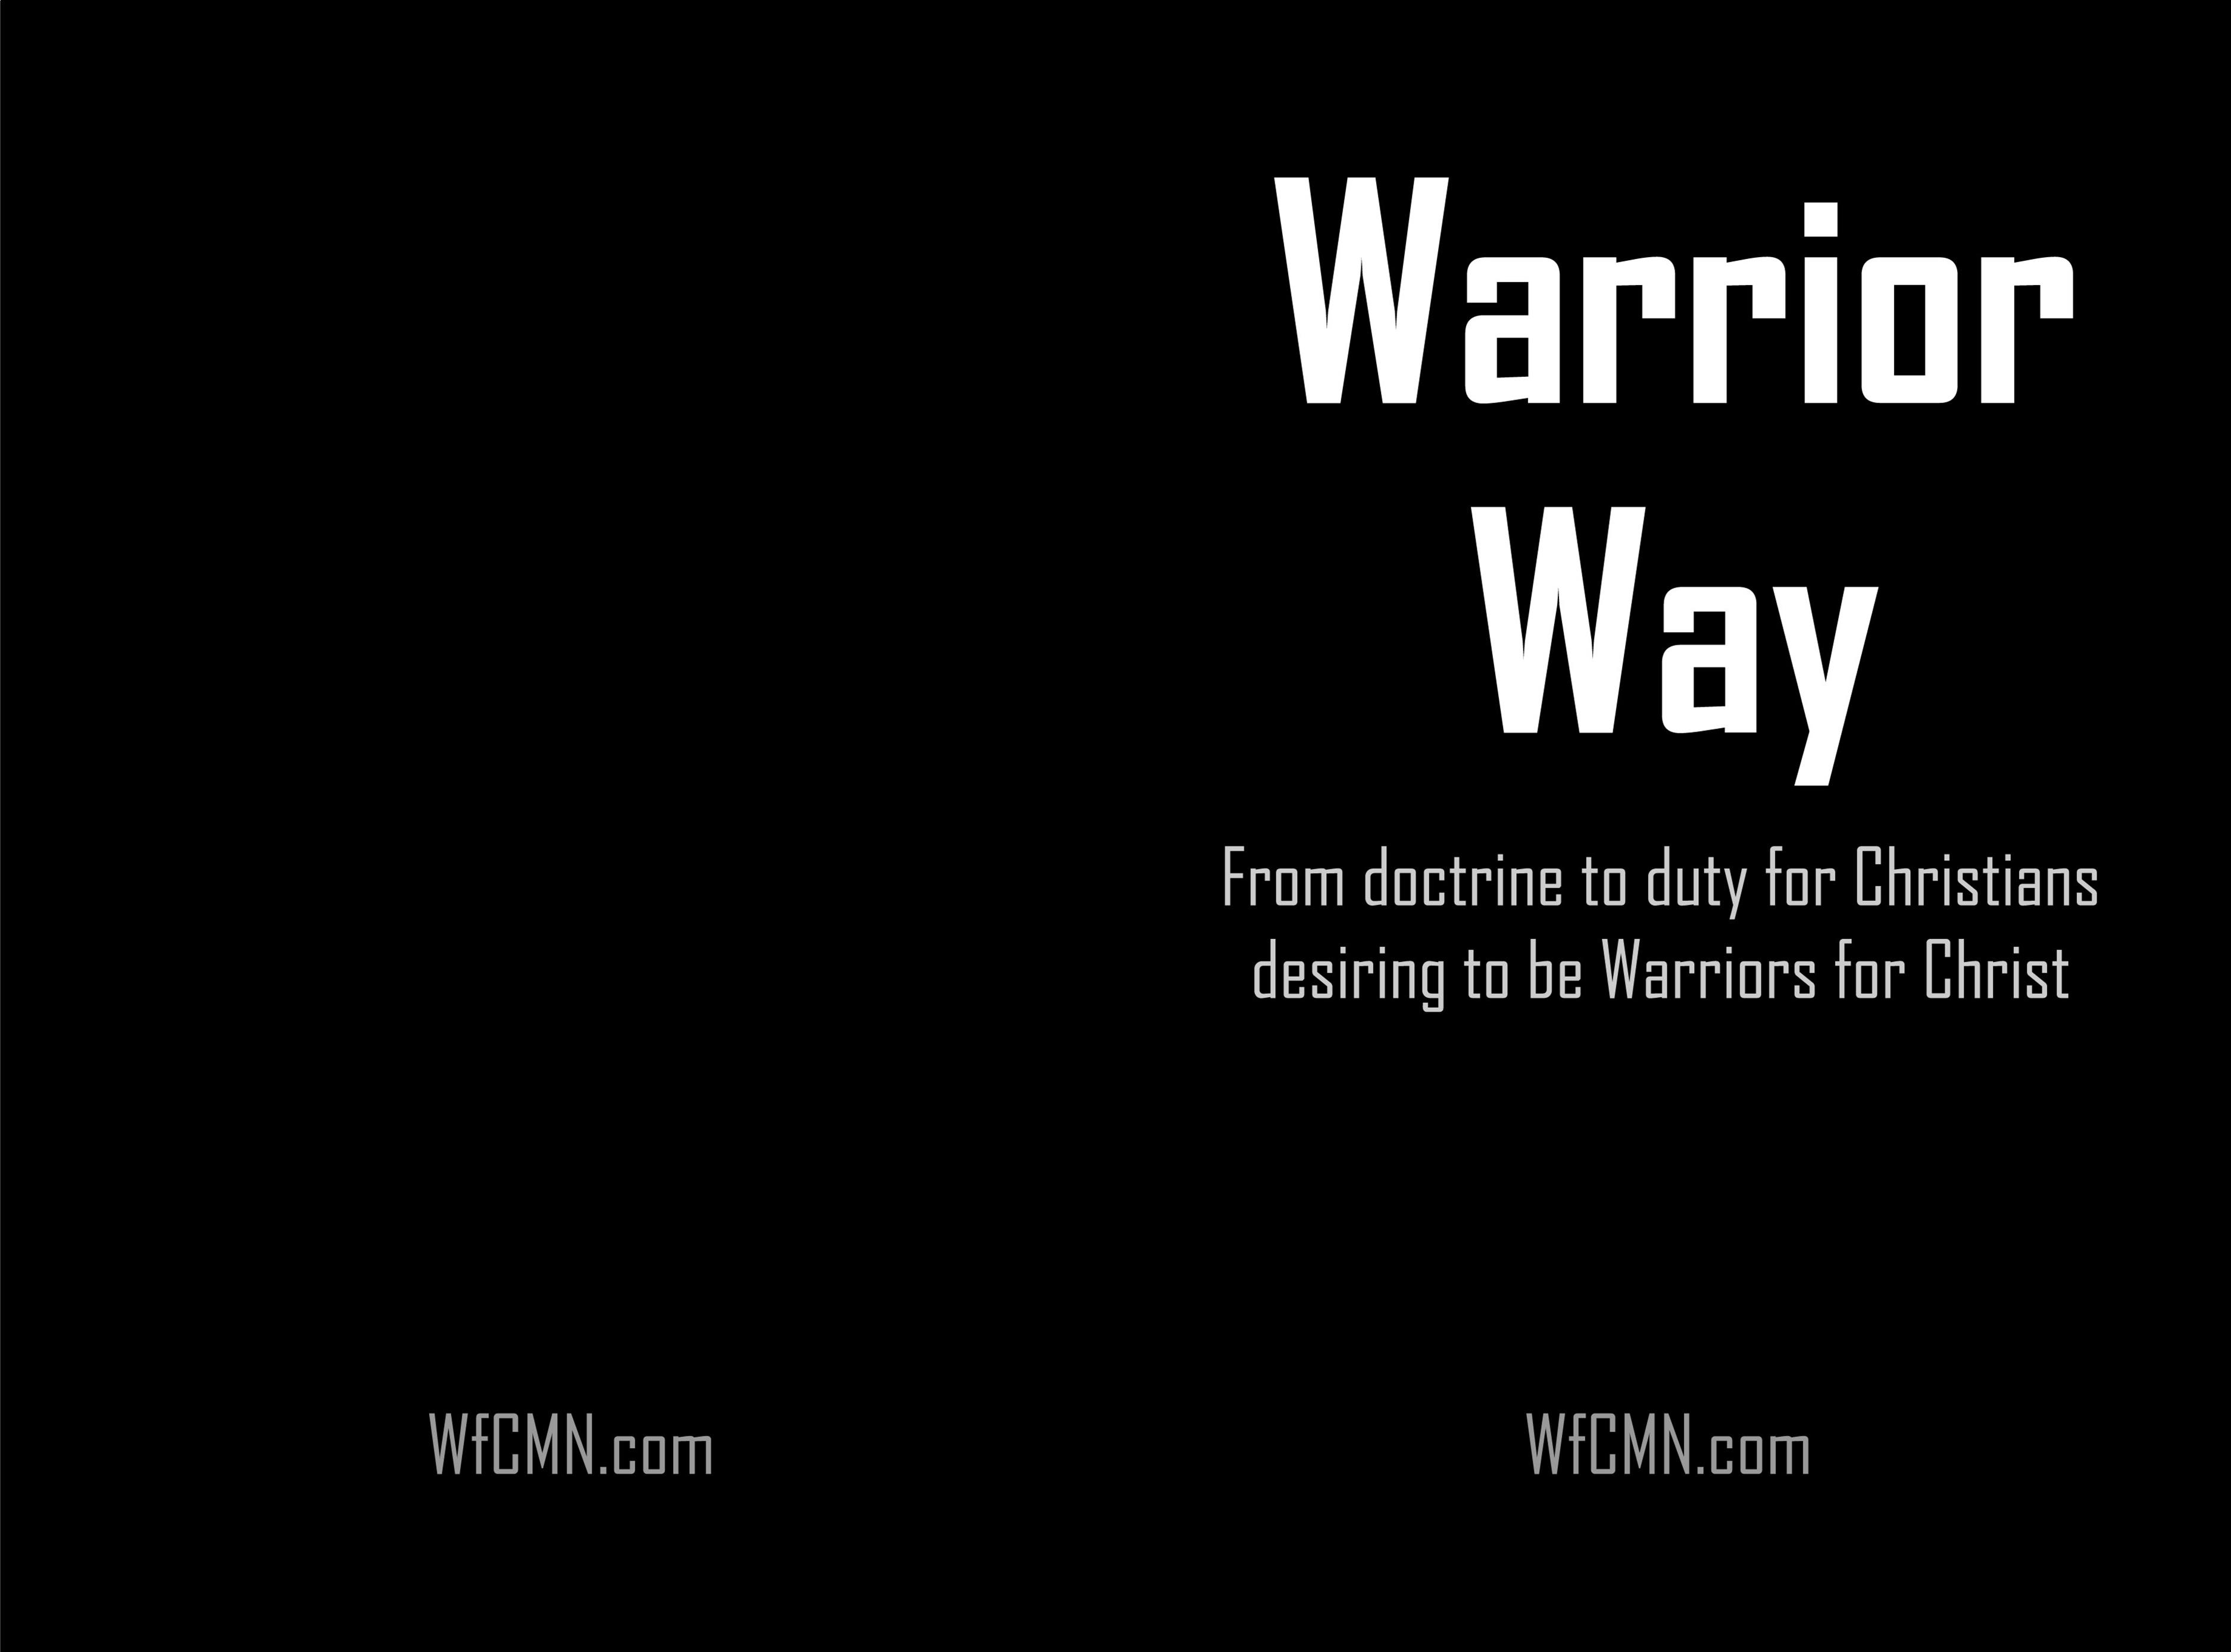 Warrior Way cover image